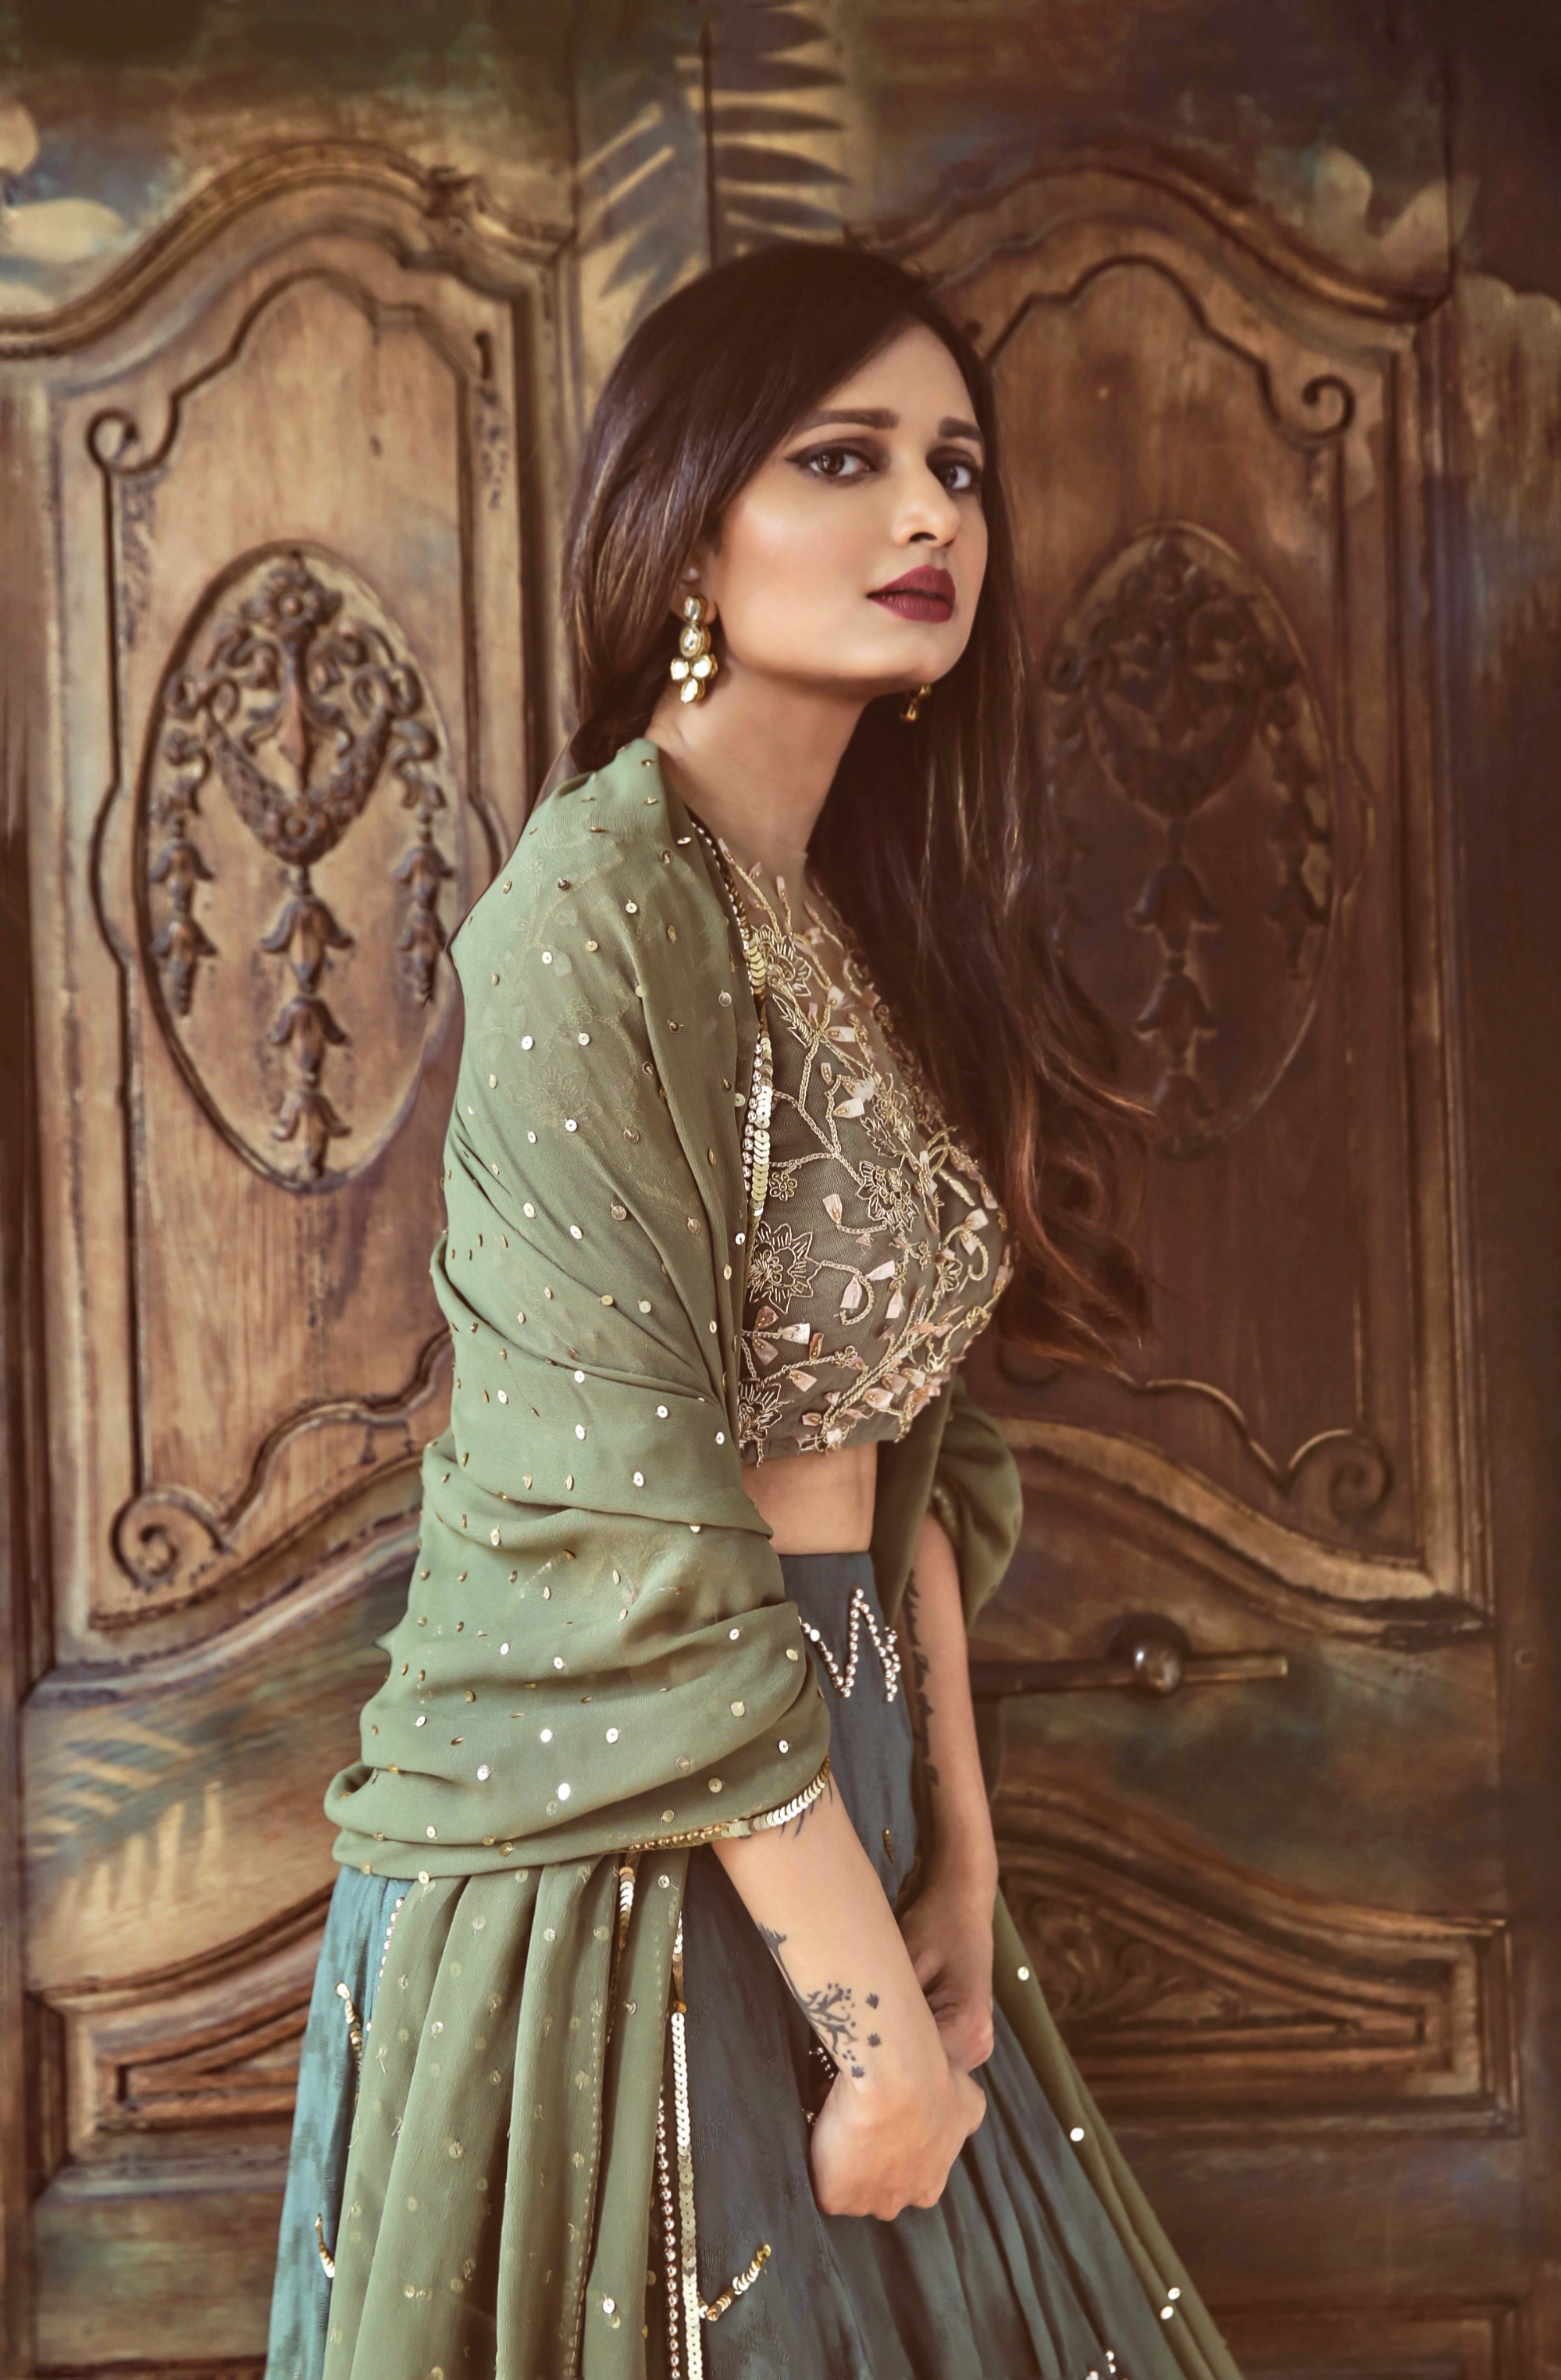 The-Chic-Armoire-by-Nidhi-Kunder-Ohaila-Khan-9